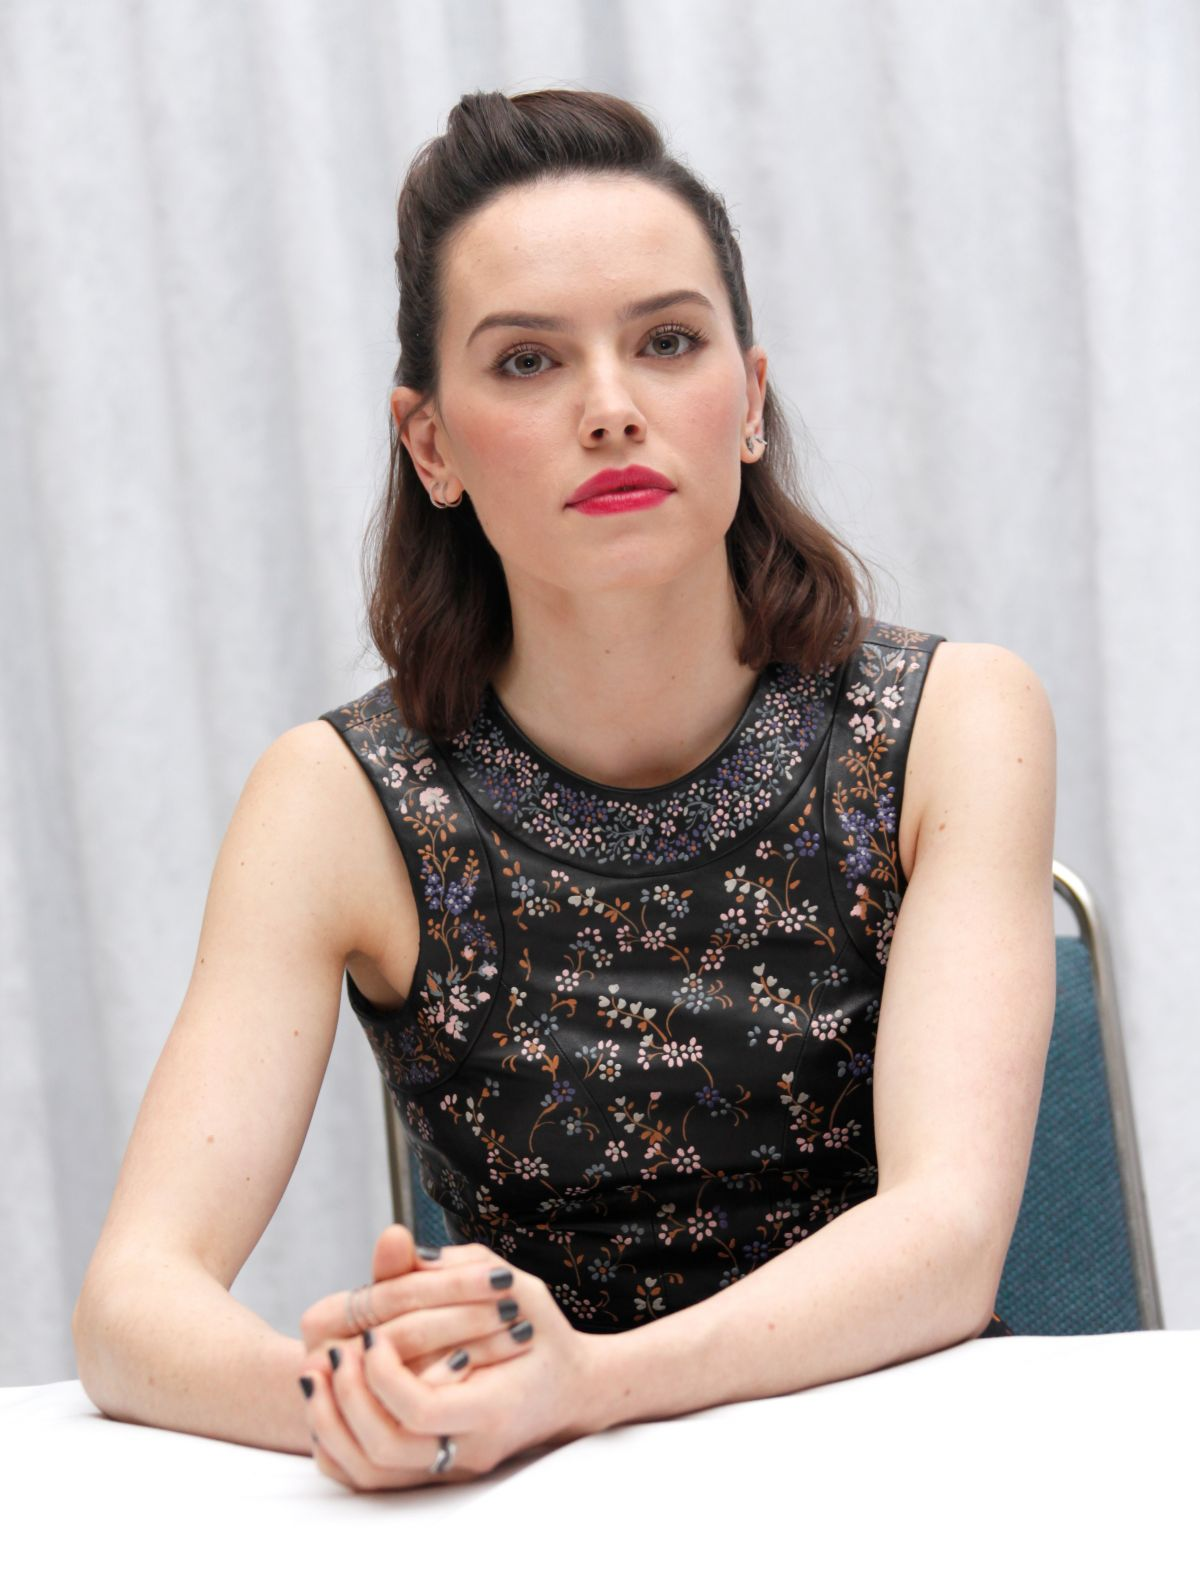 DAISY RIDLEY at Star Wars: The Force Awakens Press Conference in Los Angeles 12/04/2015